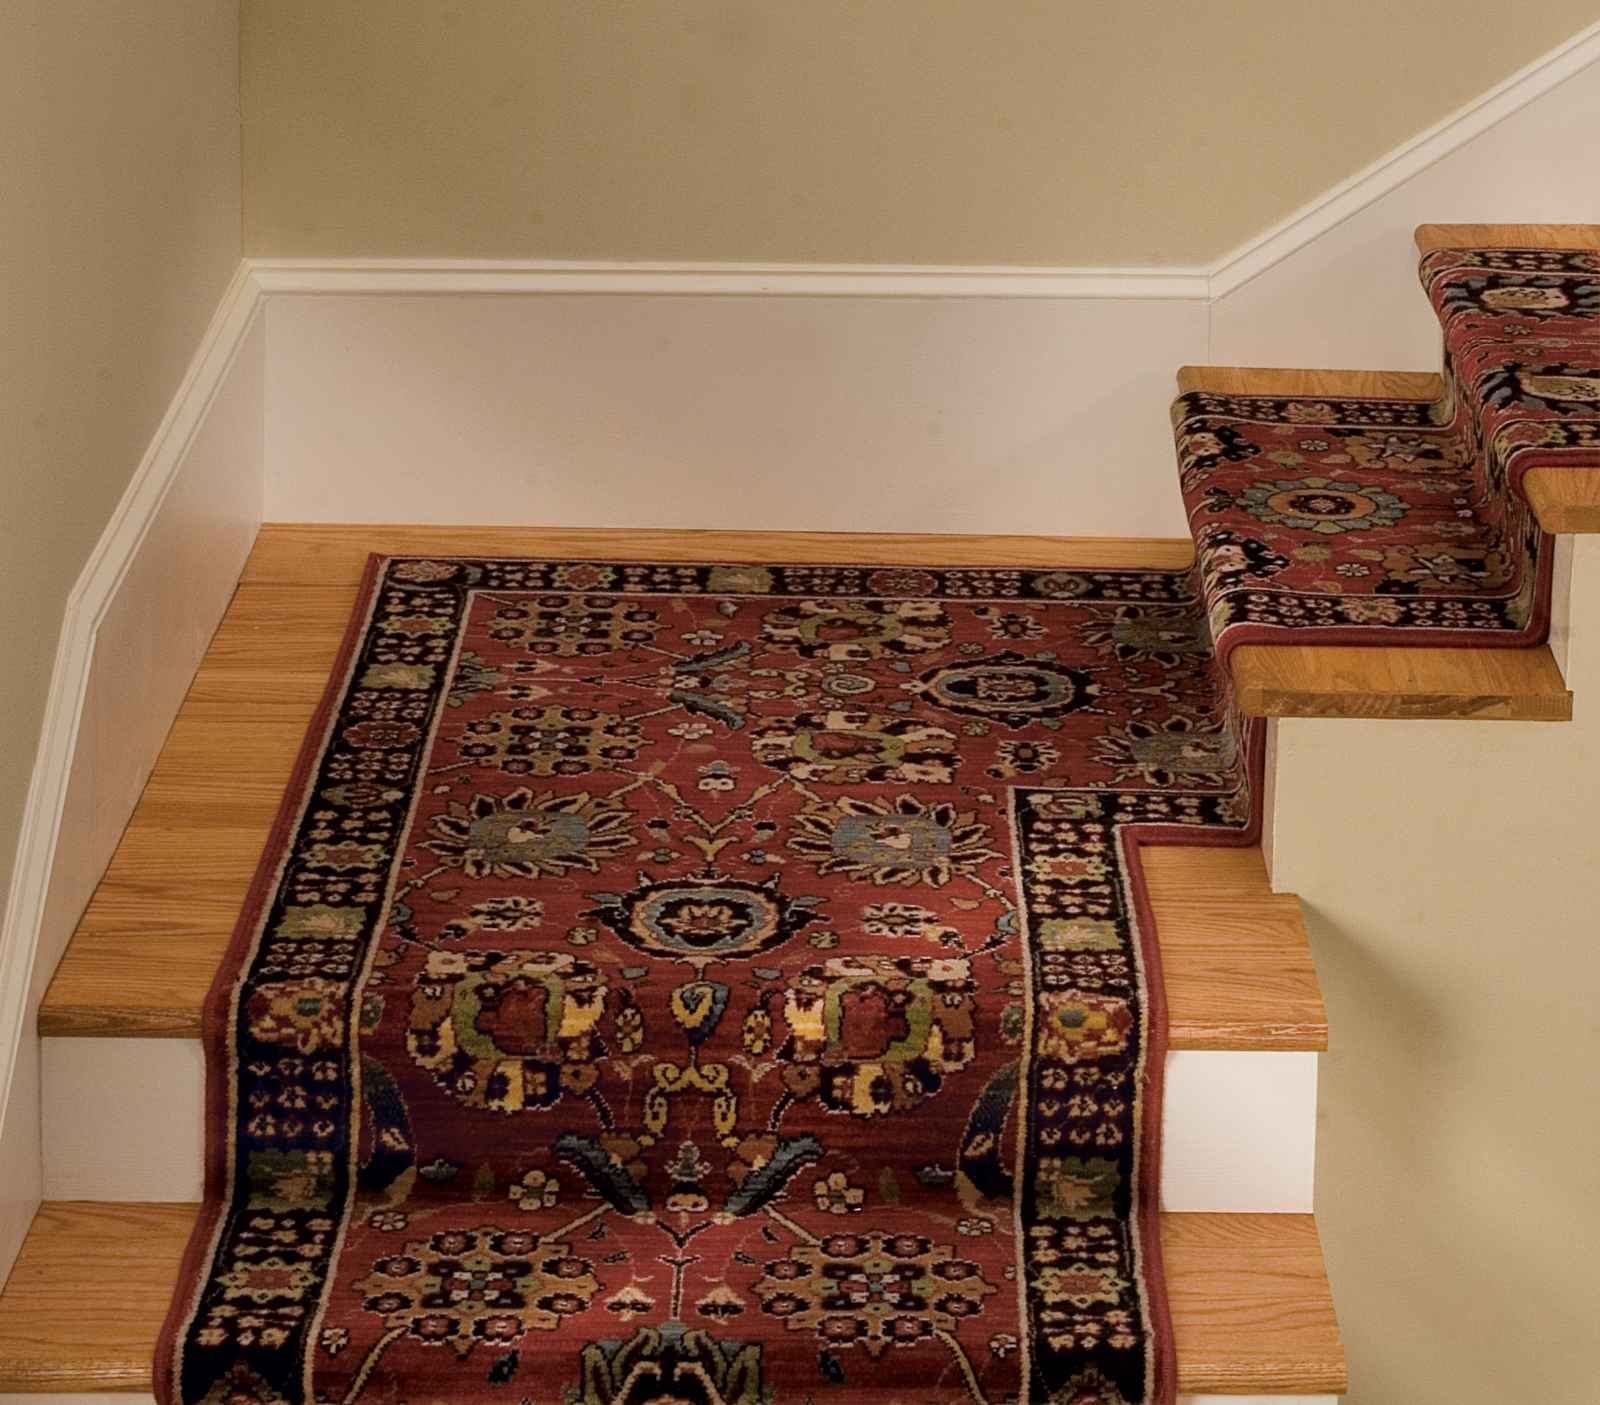 Carpet Stair Runner For Home New Home Pinterest Stair Treads Throughout Oriental Rug Stair Treads (Image 4 of 15)